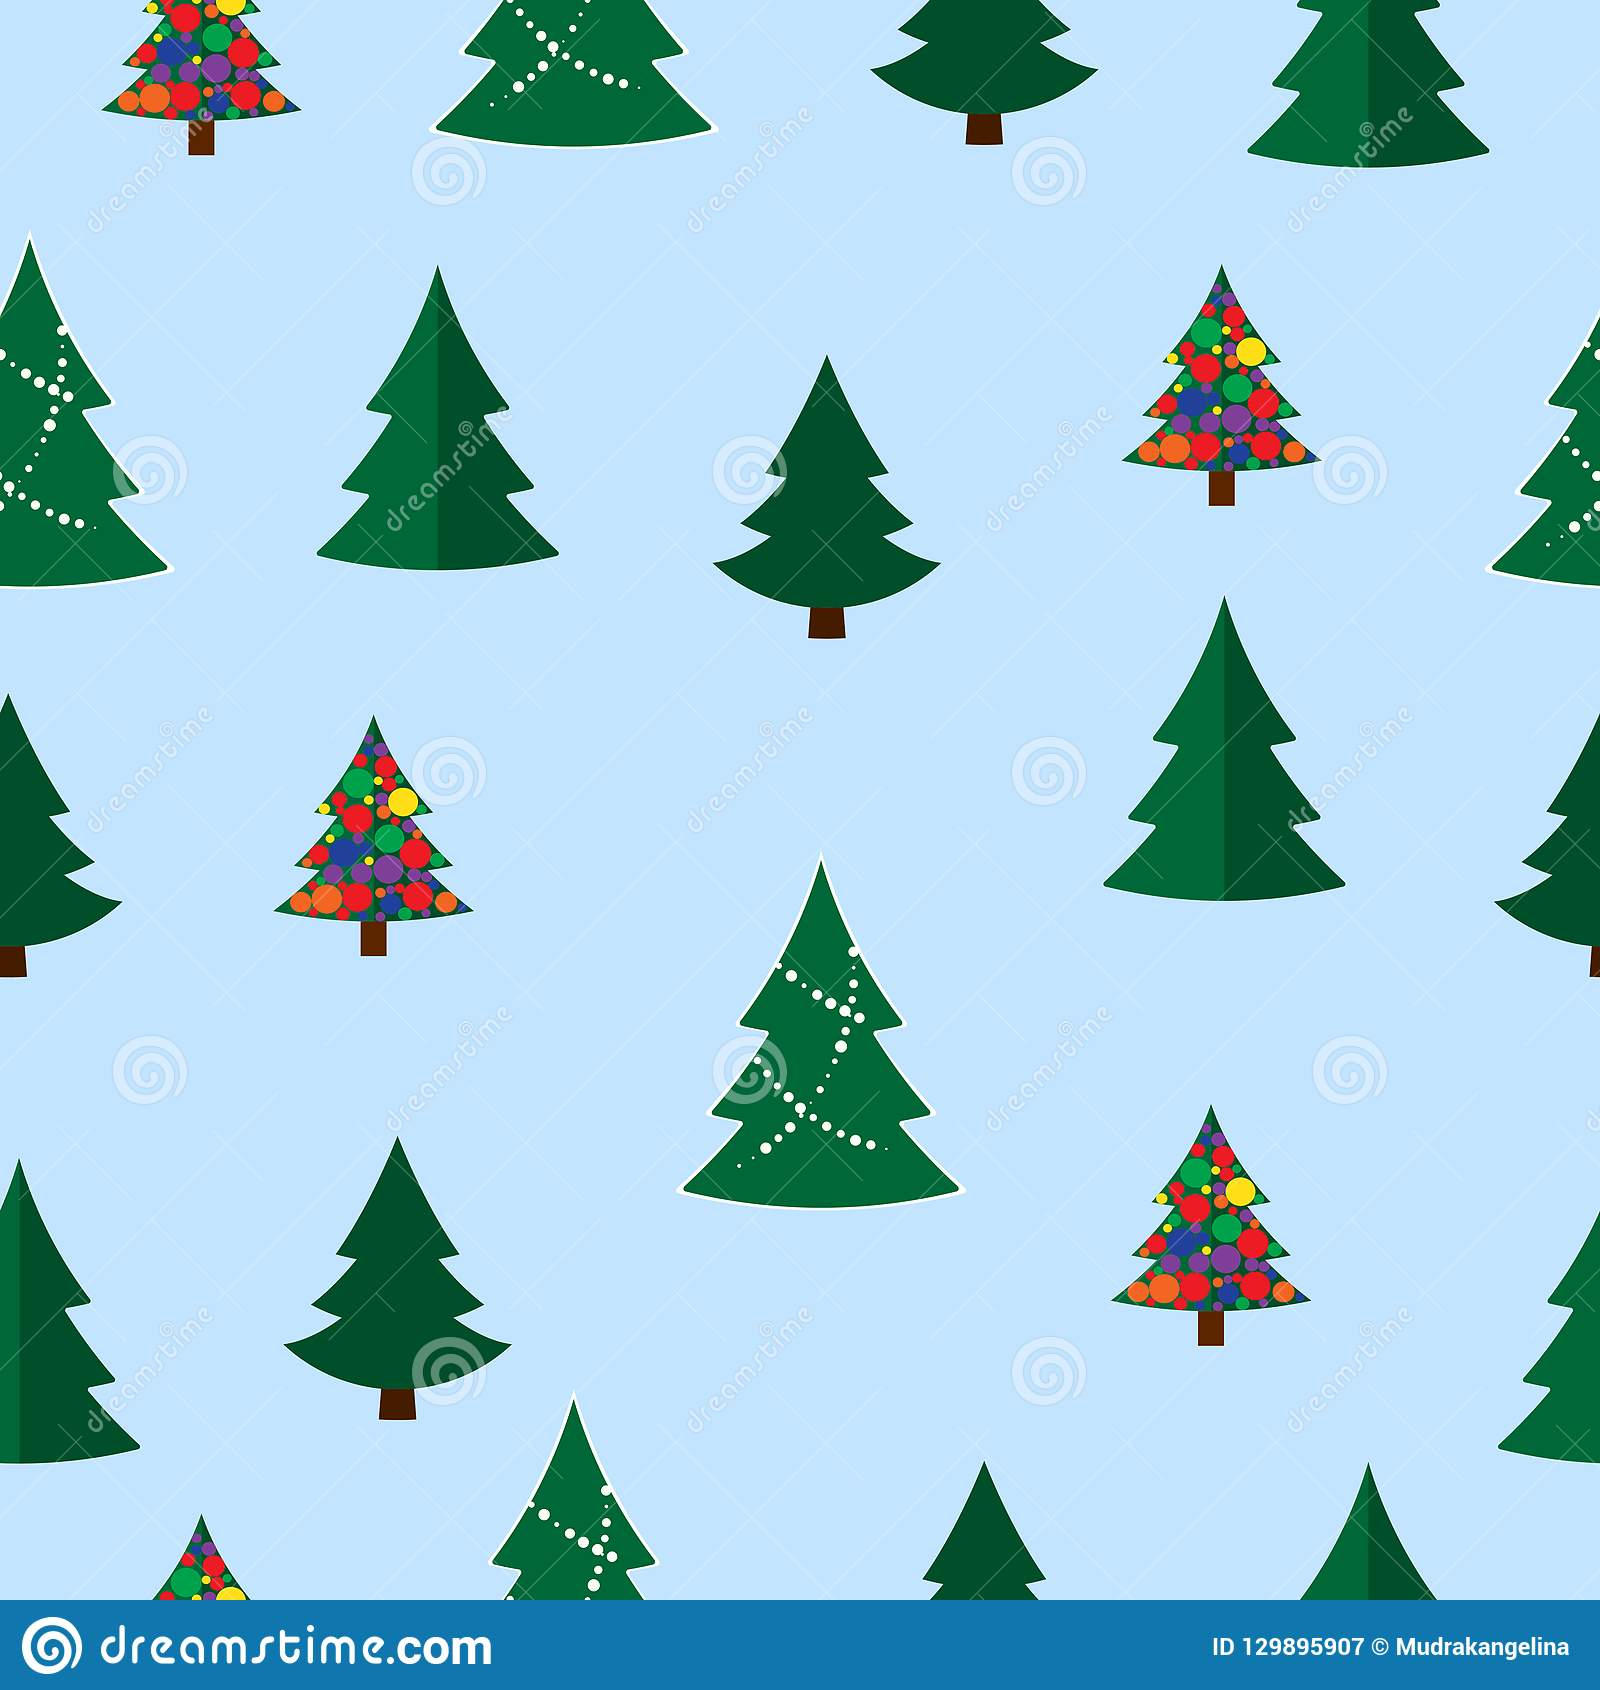 vector christmas tree seamless pattern winter forest pine trees